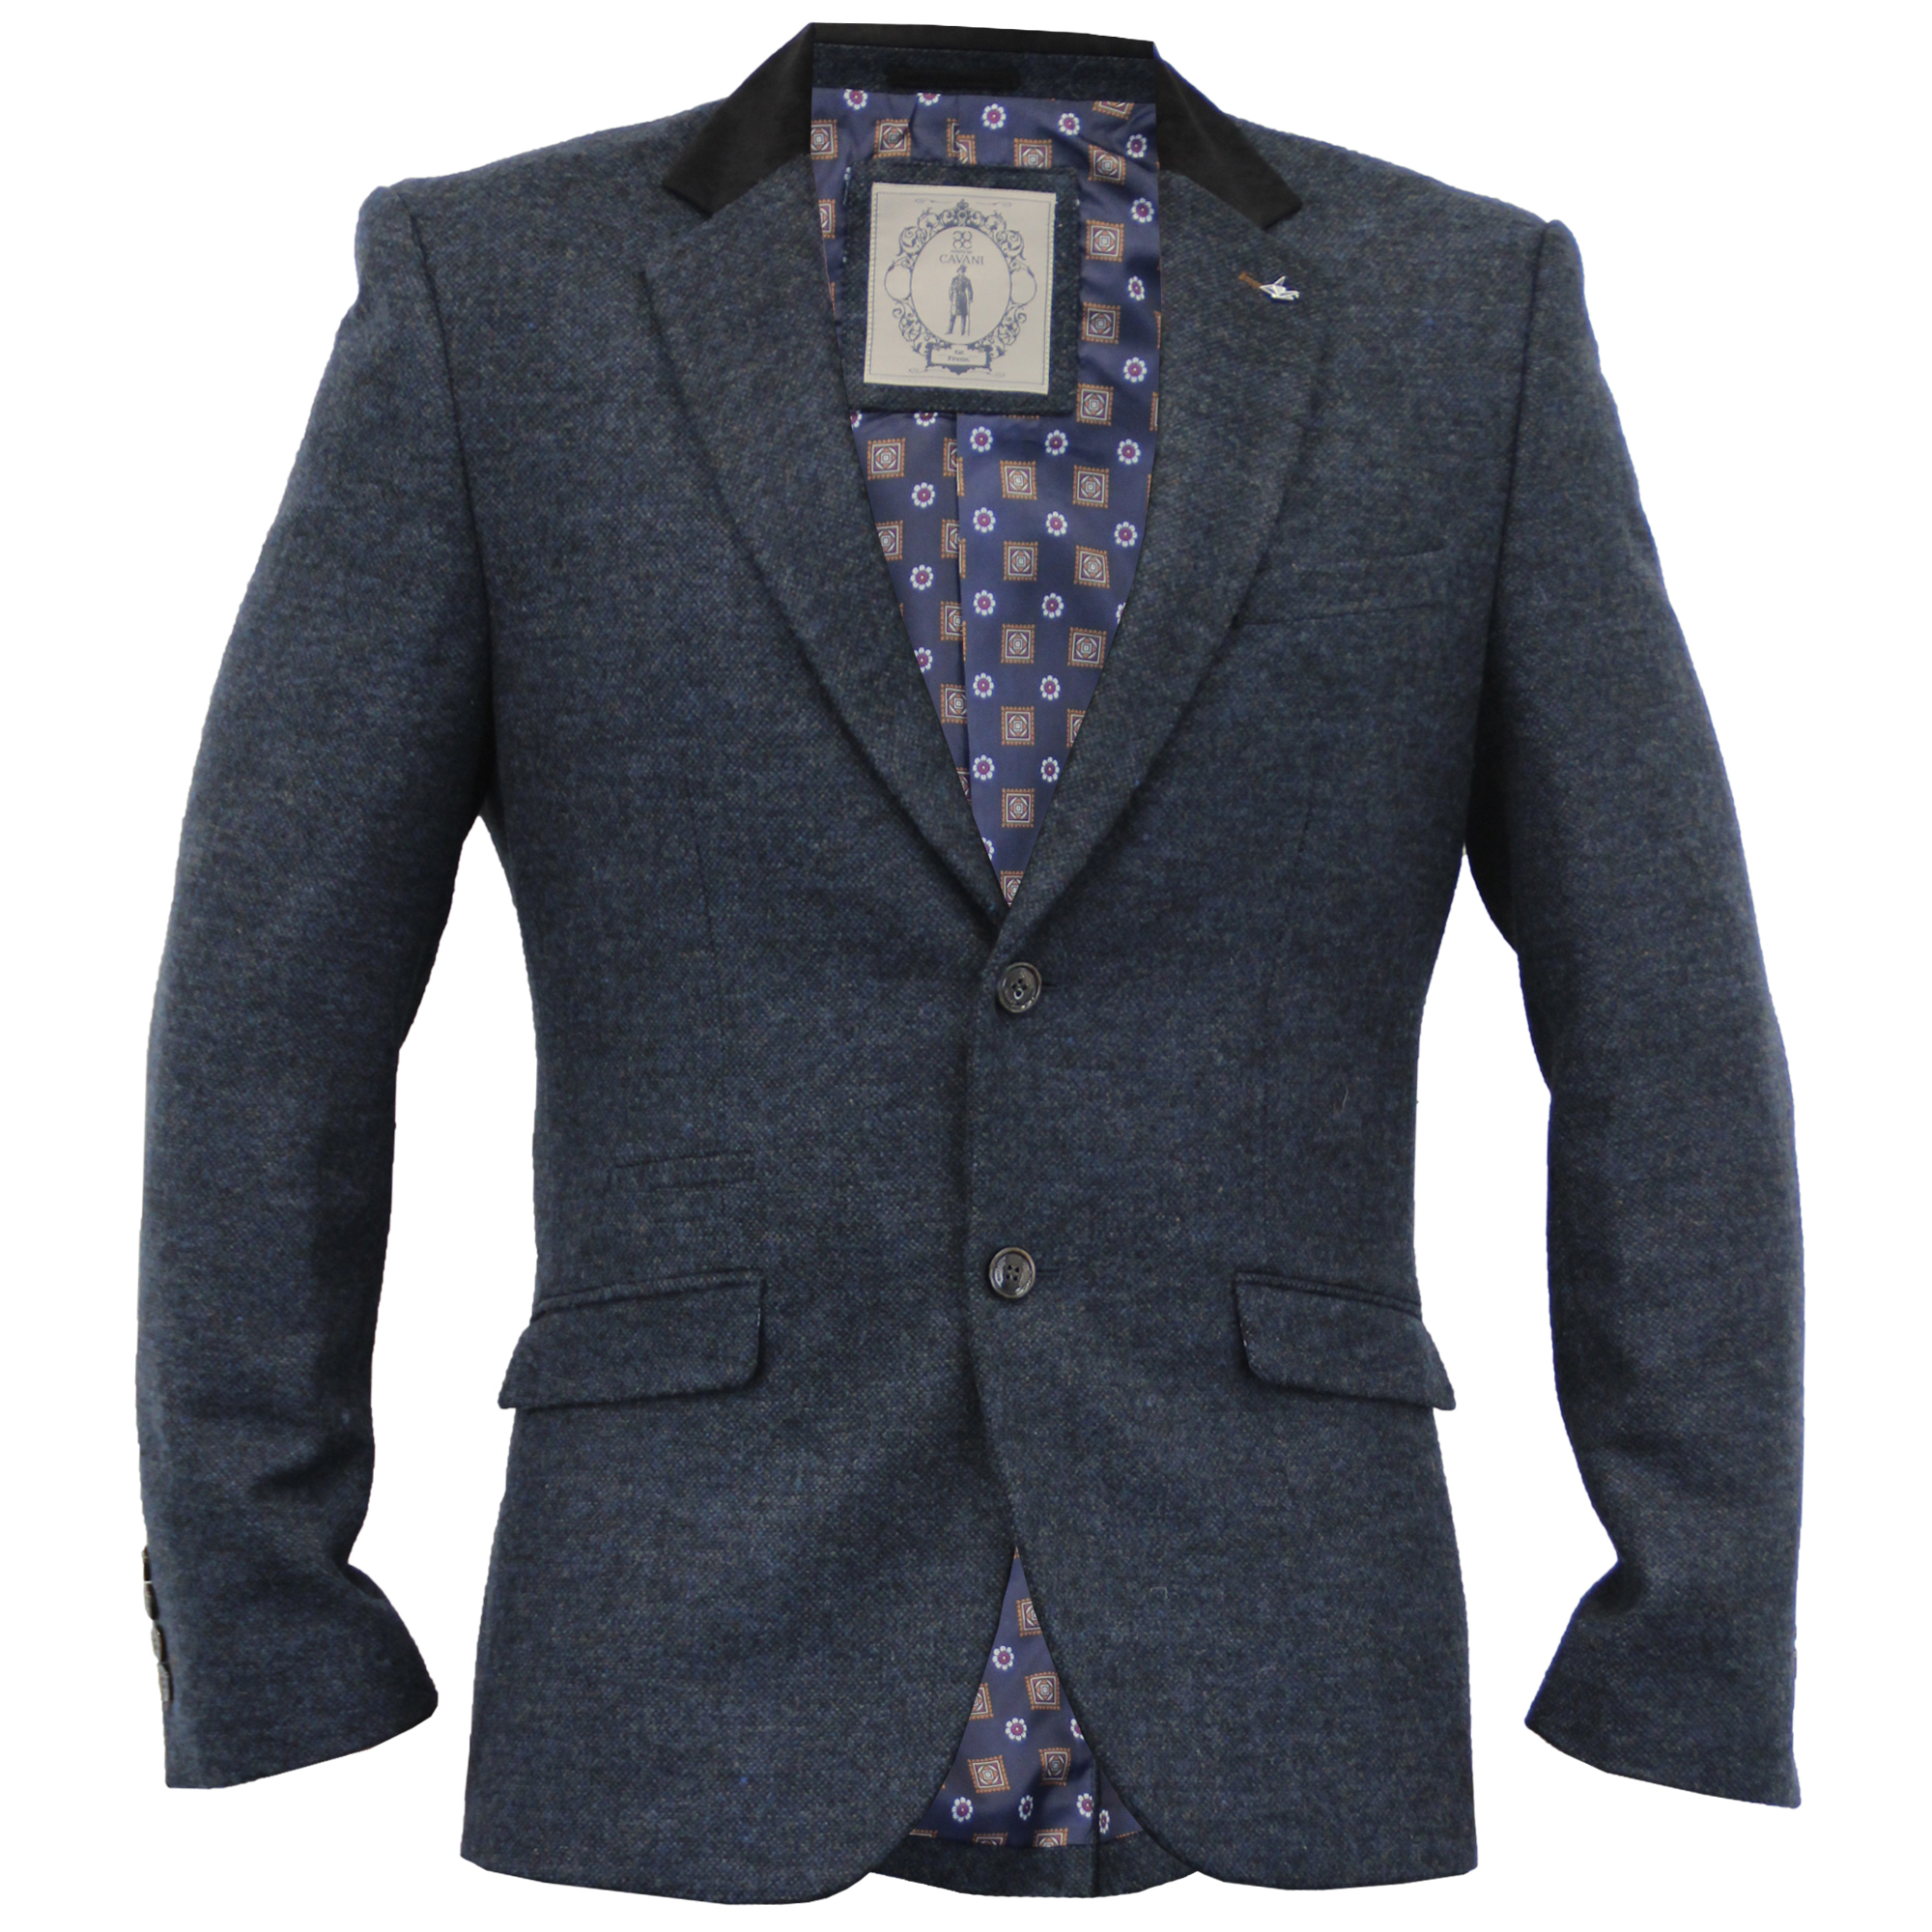 Find herringbone jacket men at ShopStyle. Shop the latest collection of herringbone jacket men from the most popular stores - all in one place.